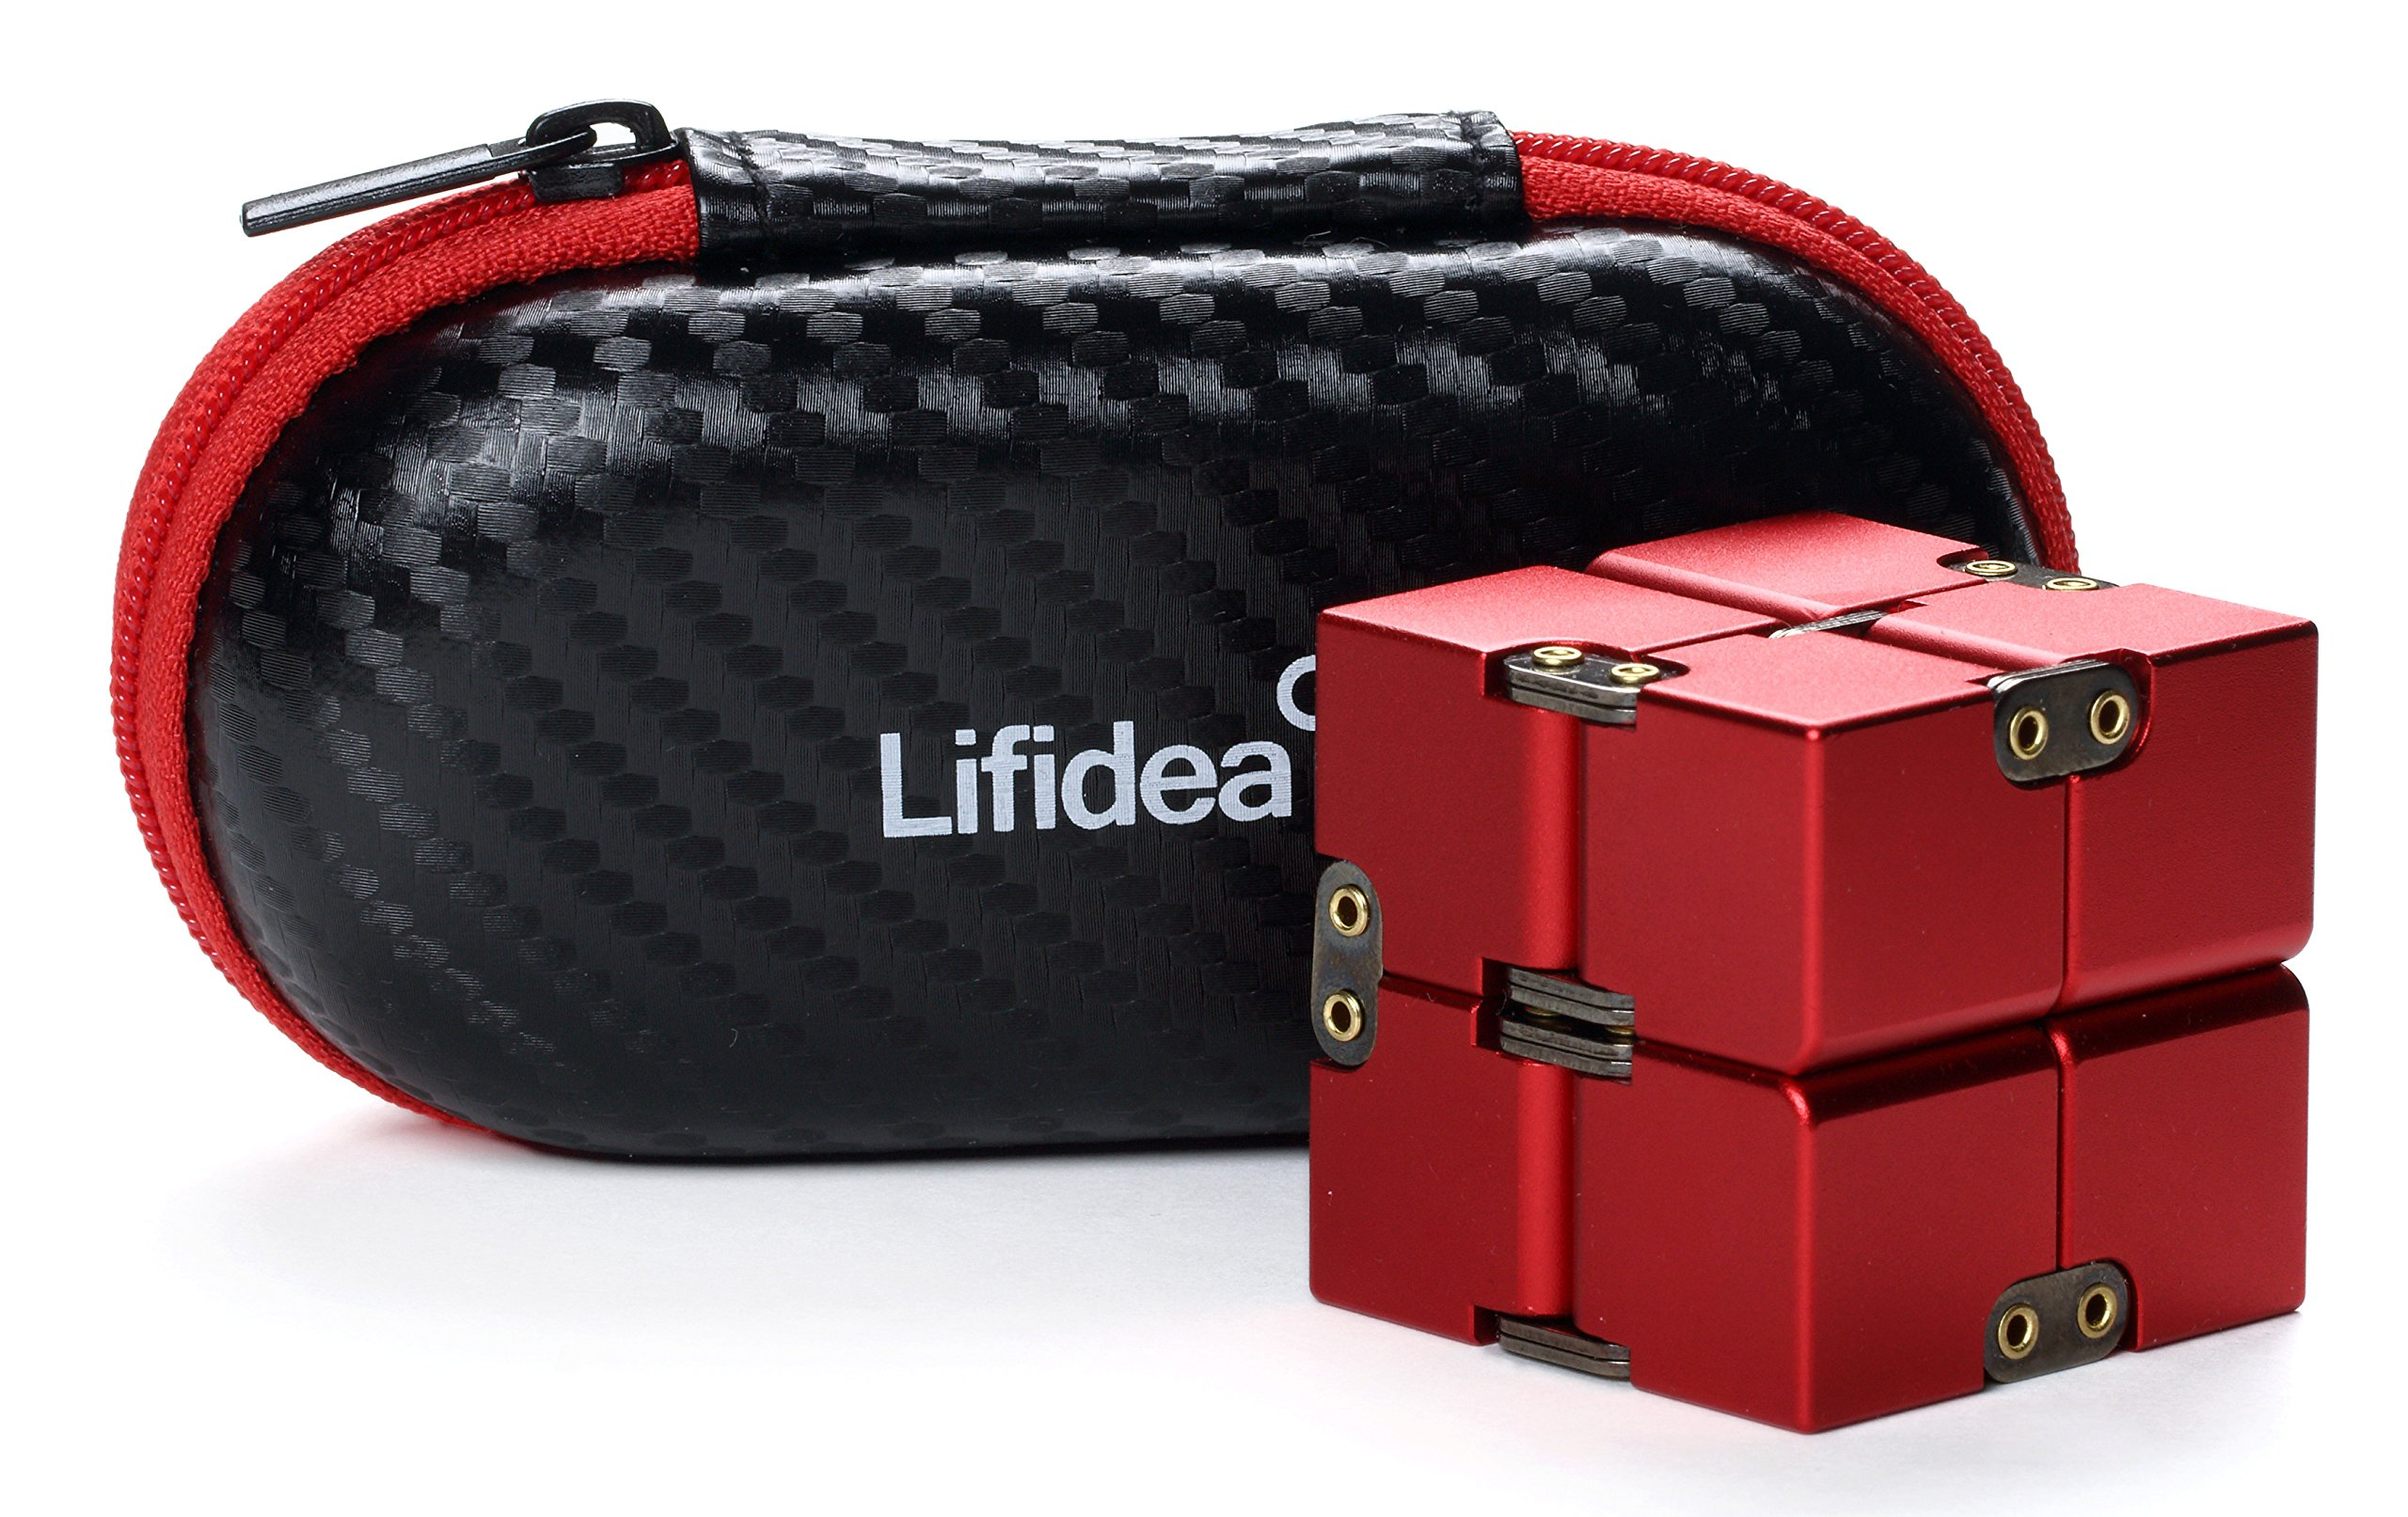 Lifidea Aluminum Alloy Metal Infinity Cube Fidget Cube (5 Colors) Handheld Fidget Toy Desk Toy with Cool Case Infinity Magic Cube Relieve Stress Anxiety ADHD OCD for Kids and Adults (Red) by Lifidea